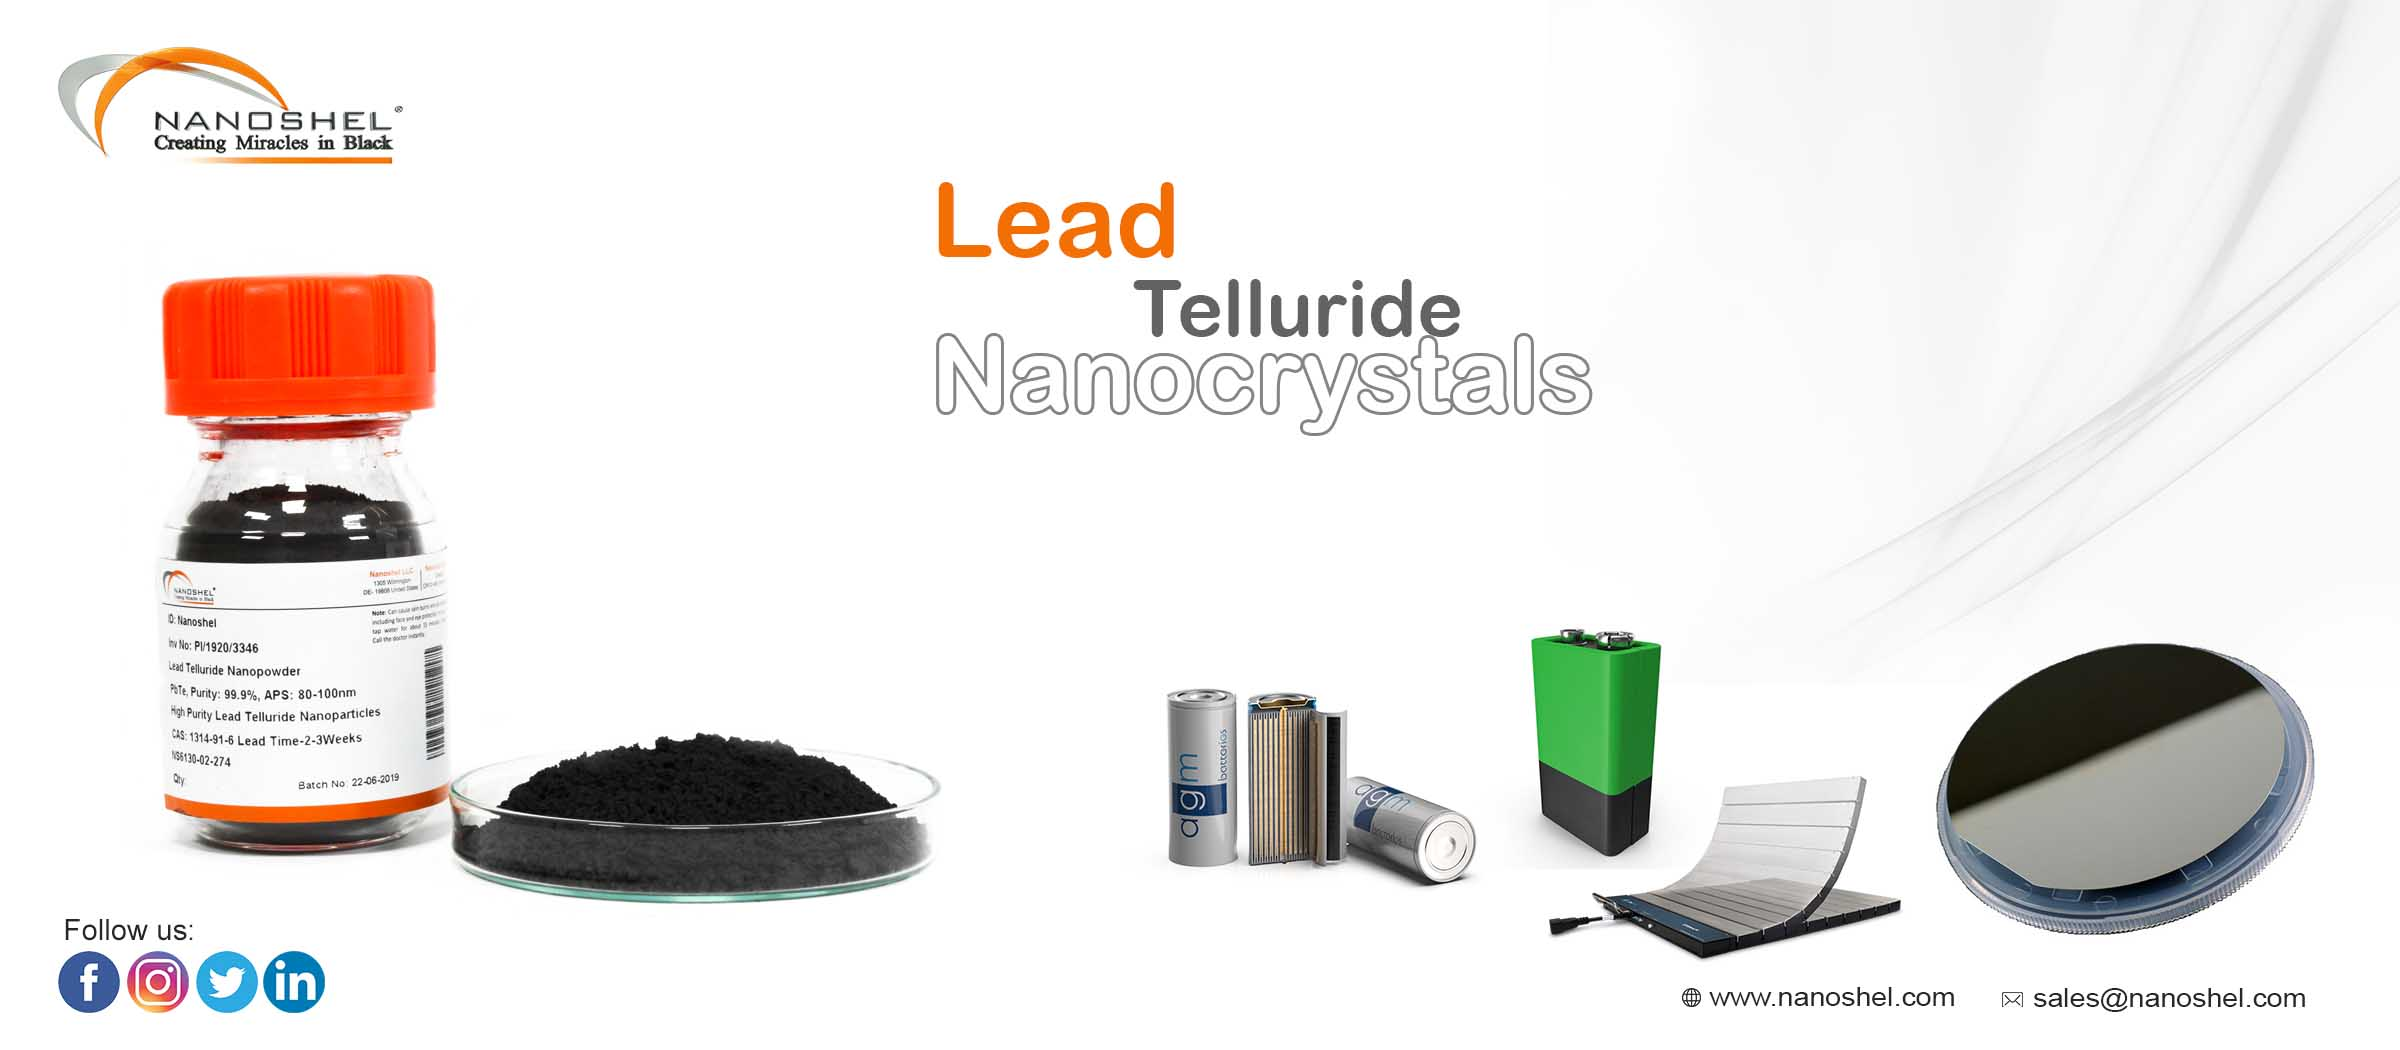 Lead Telluride Nanocrystals